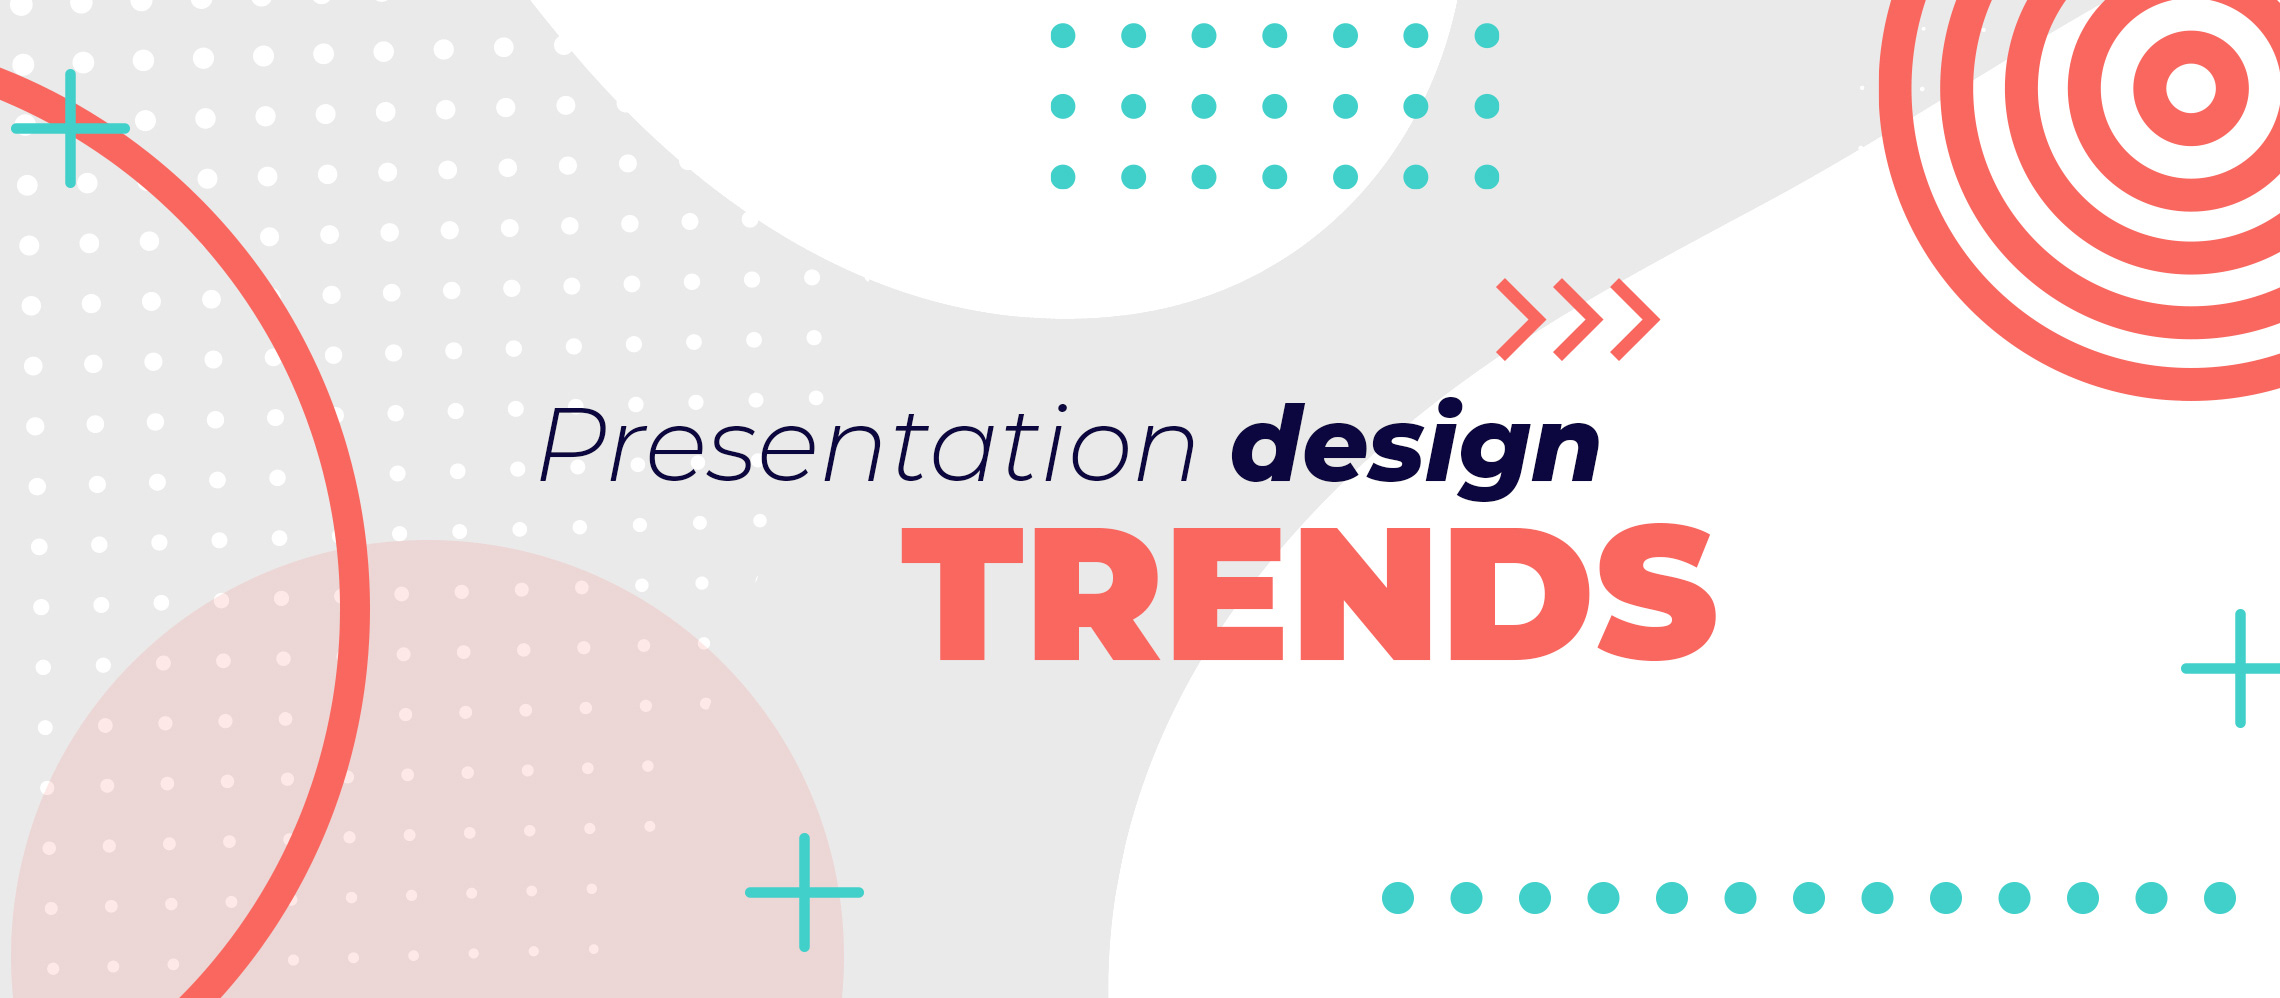 9 design trends for summer 2020 to update your next presentation